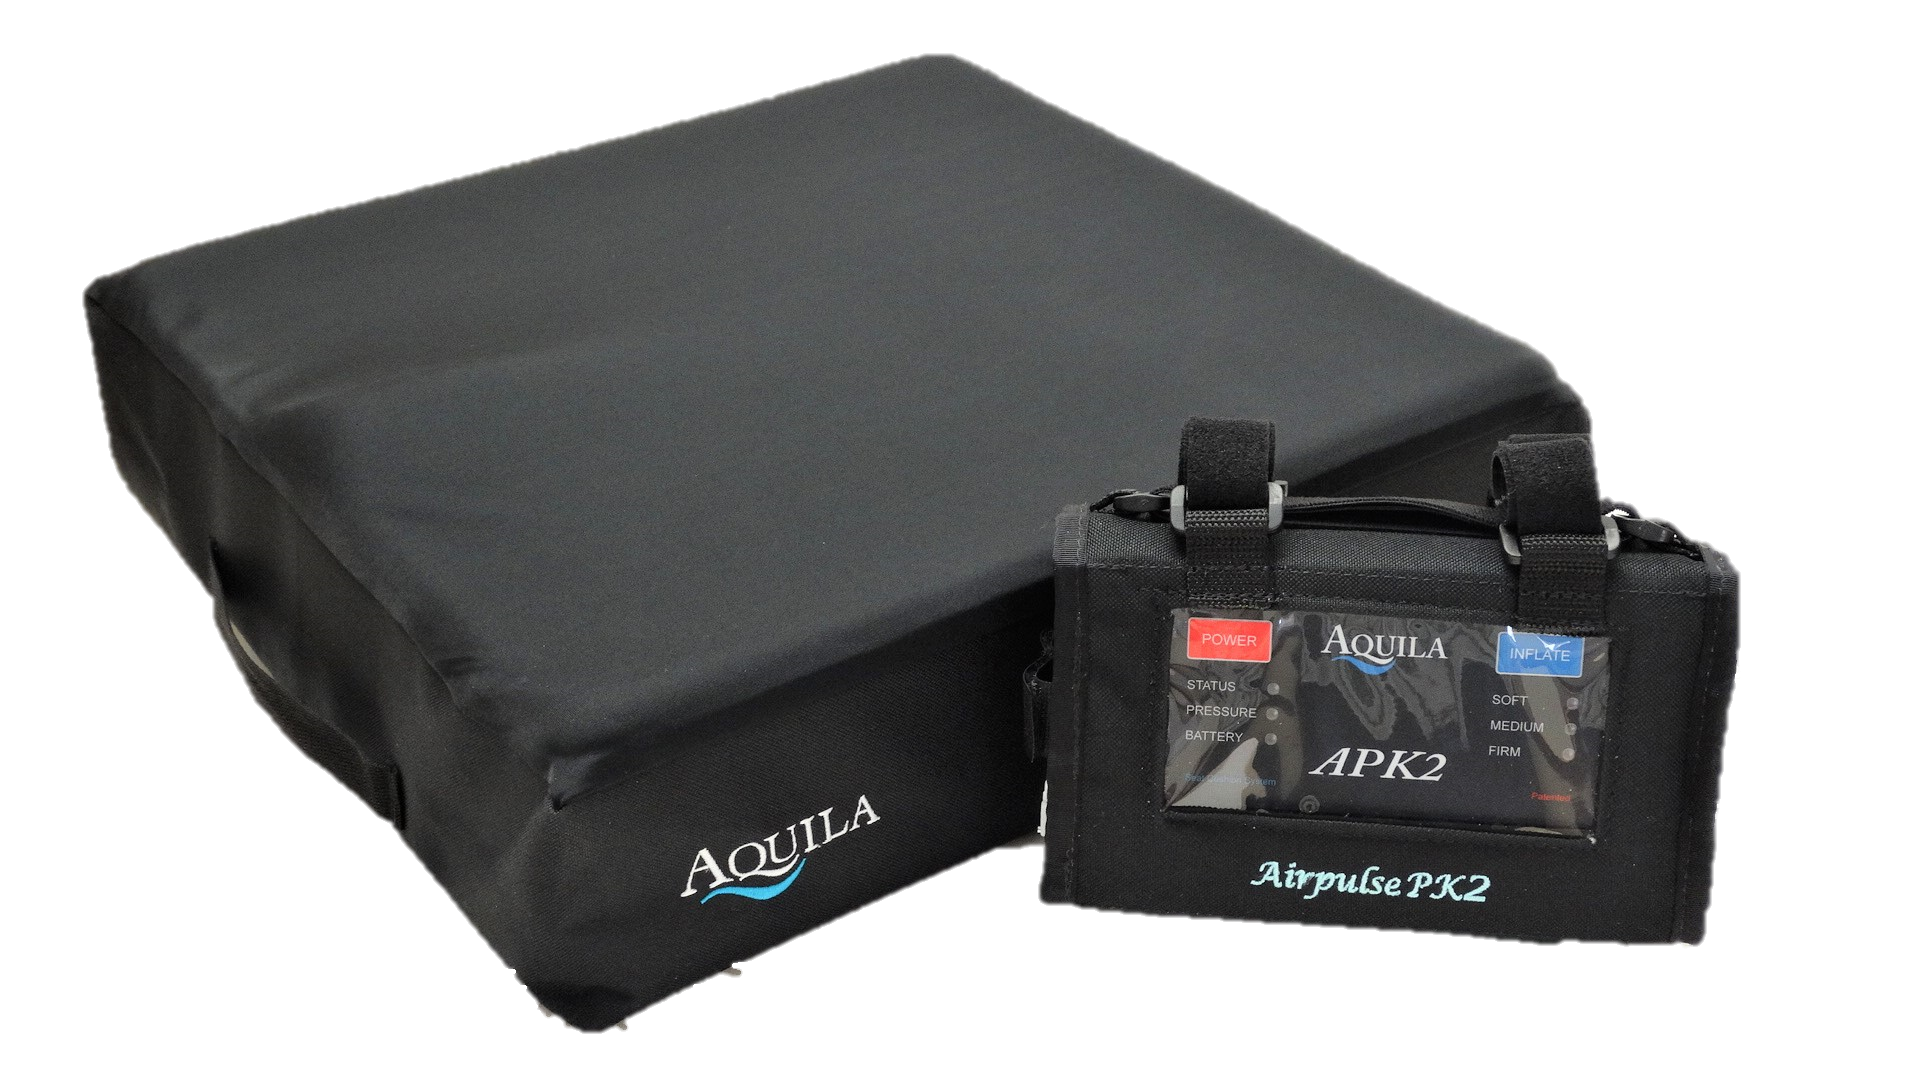 Airpulse Pk2 Custom Wheelchair Cushion System Aquila Corp